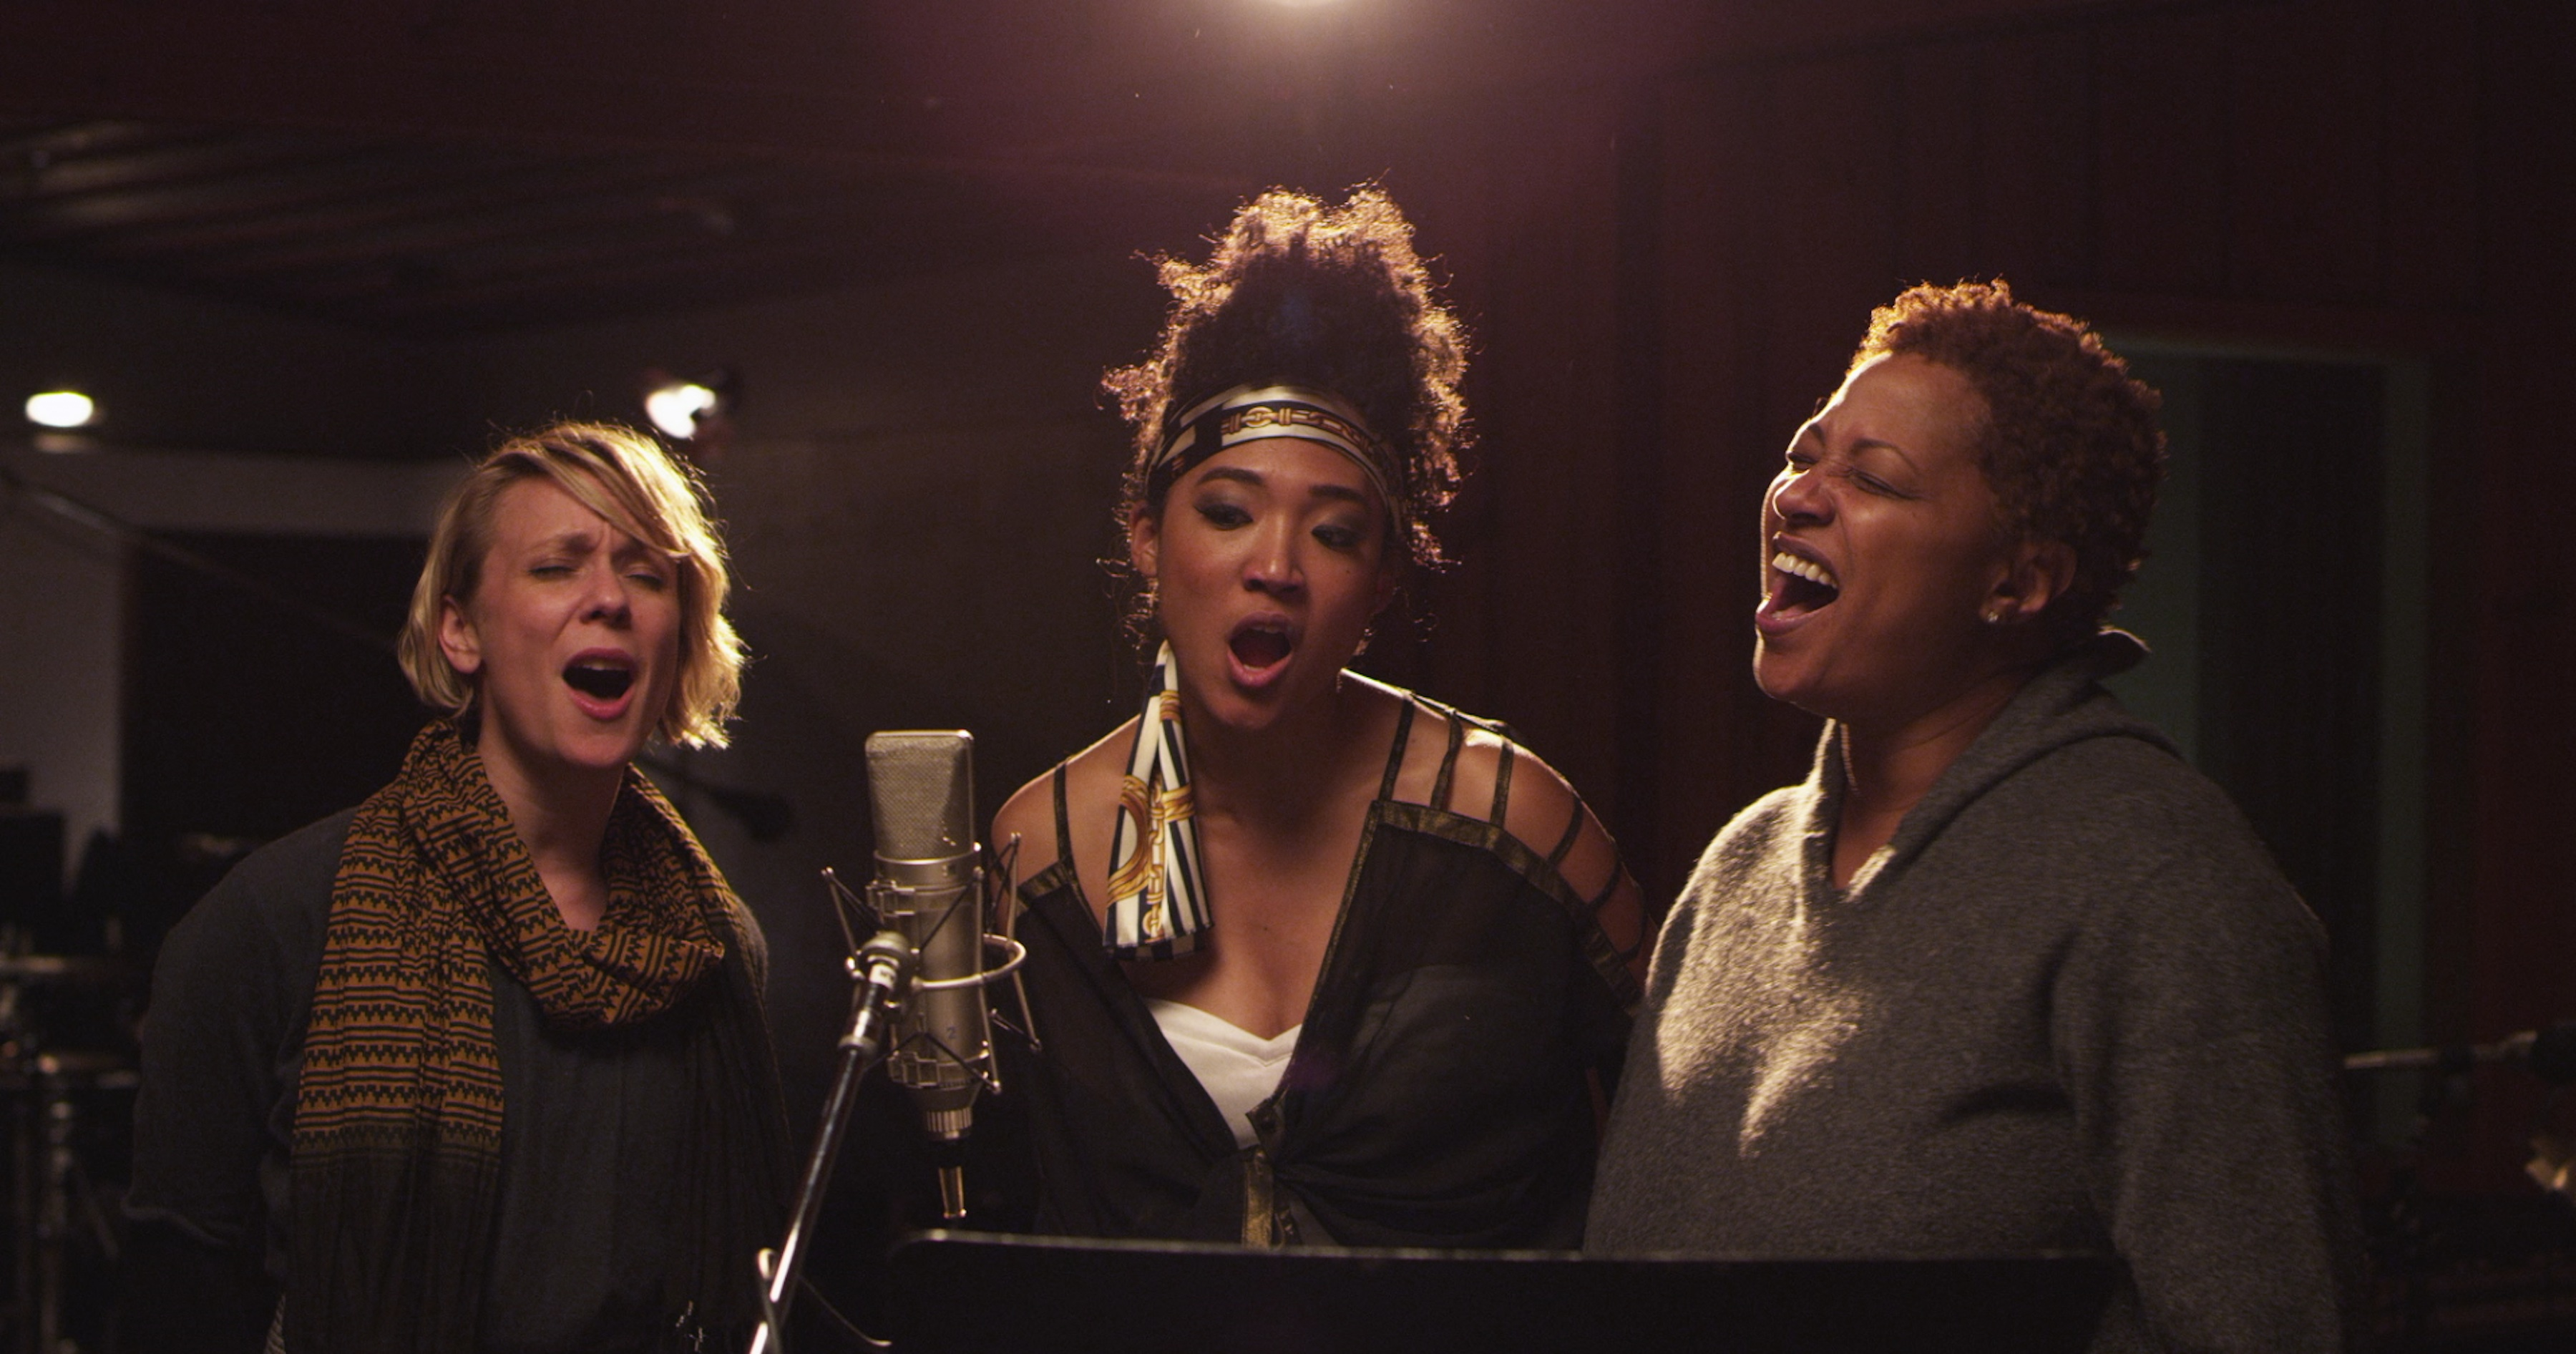 twenty_feet_from_stardom_jo_lawry_judith_hill_lisa_fischer_c_graham_willoughby_tremolo_productions.jpg